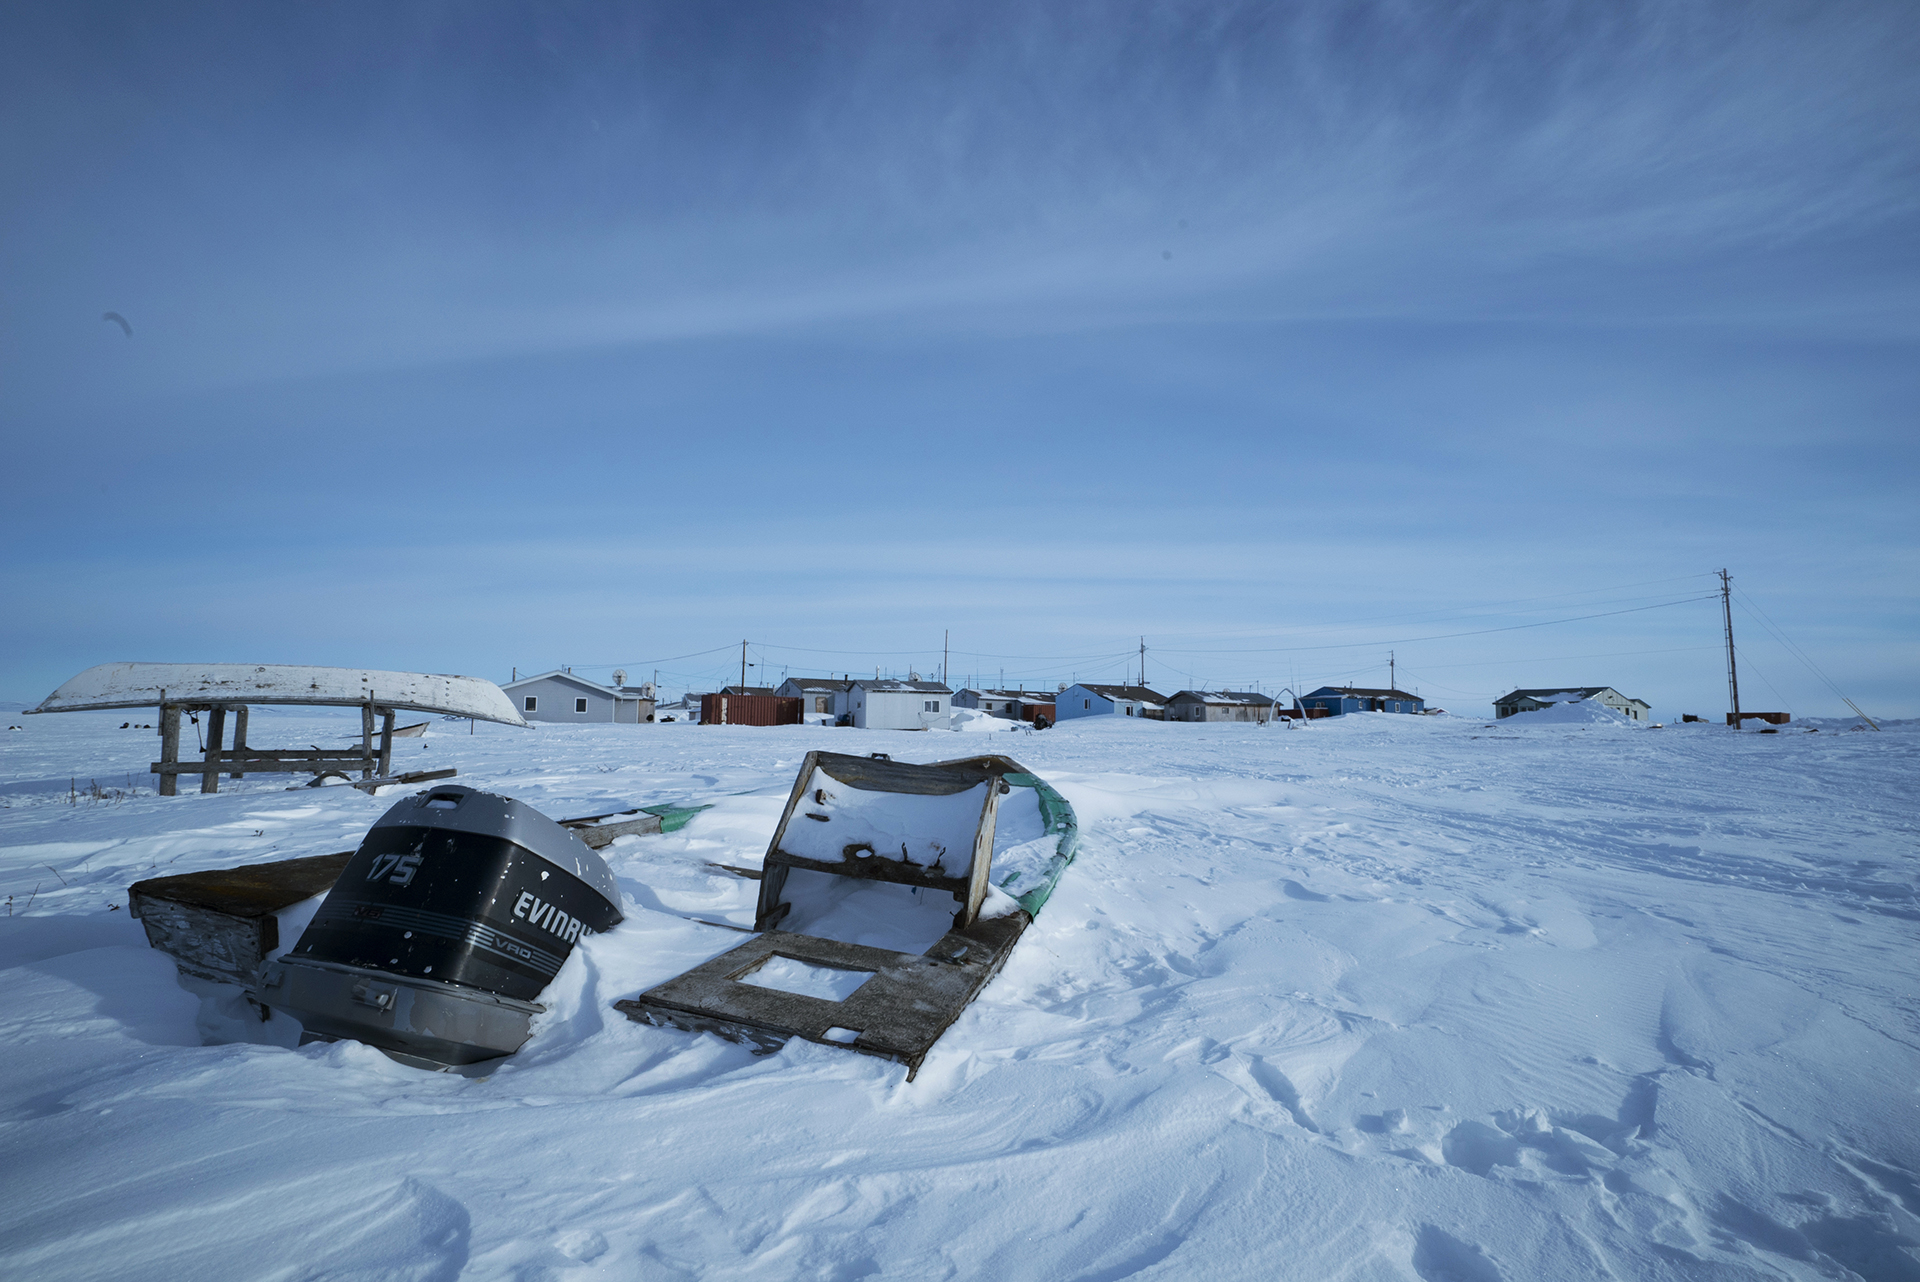 Boats buried in the snow on Kivalina. (Hans Glick/Global Citizen)